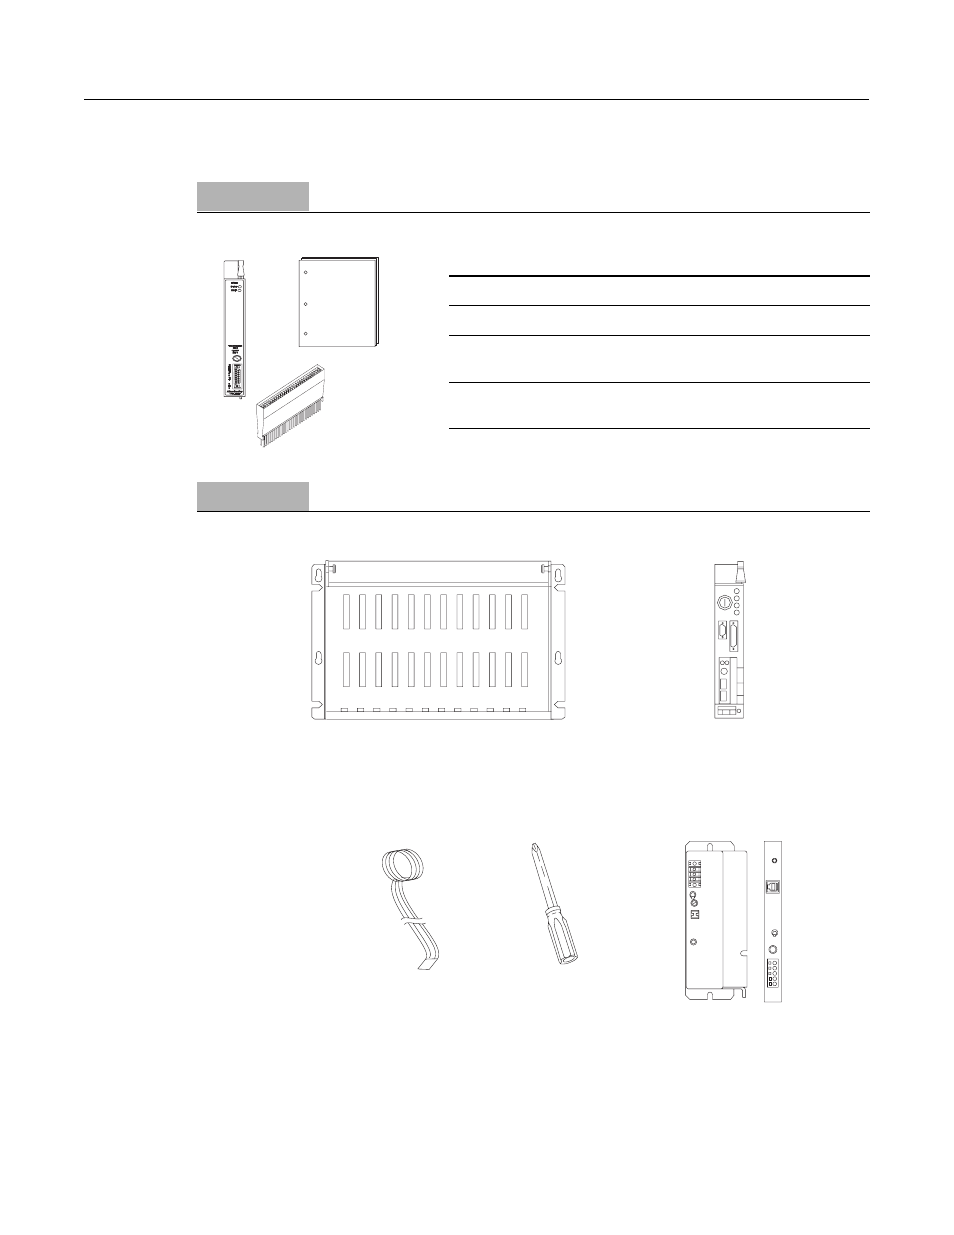 Installing And Configuring The Interface Module Rockwell Plc 5 Wiring Diagrams Automation 1785 Enet User Manual Ethernet Page 10 54